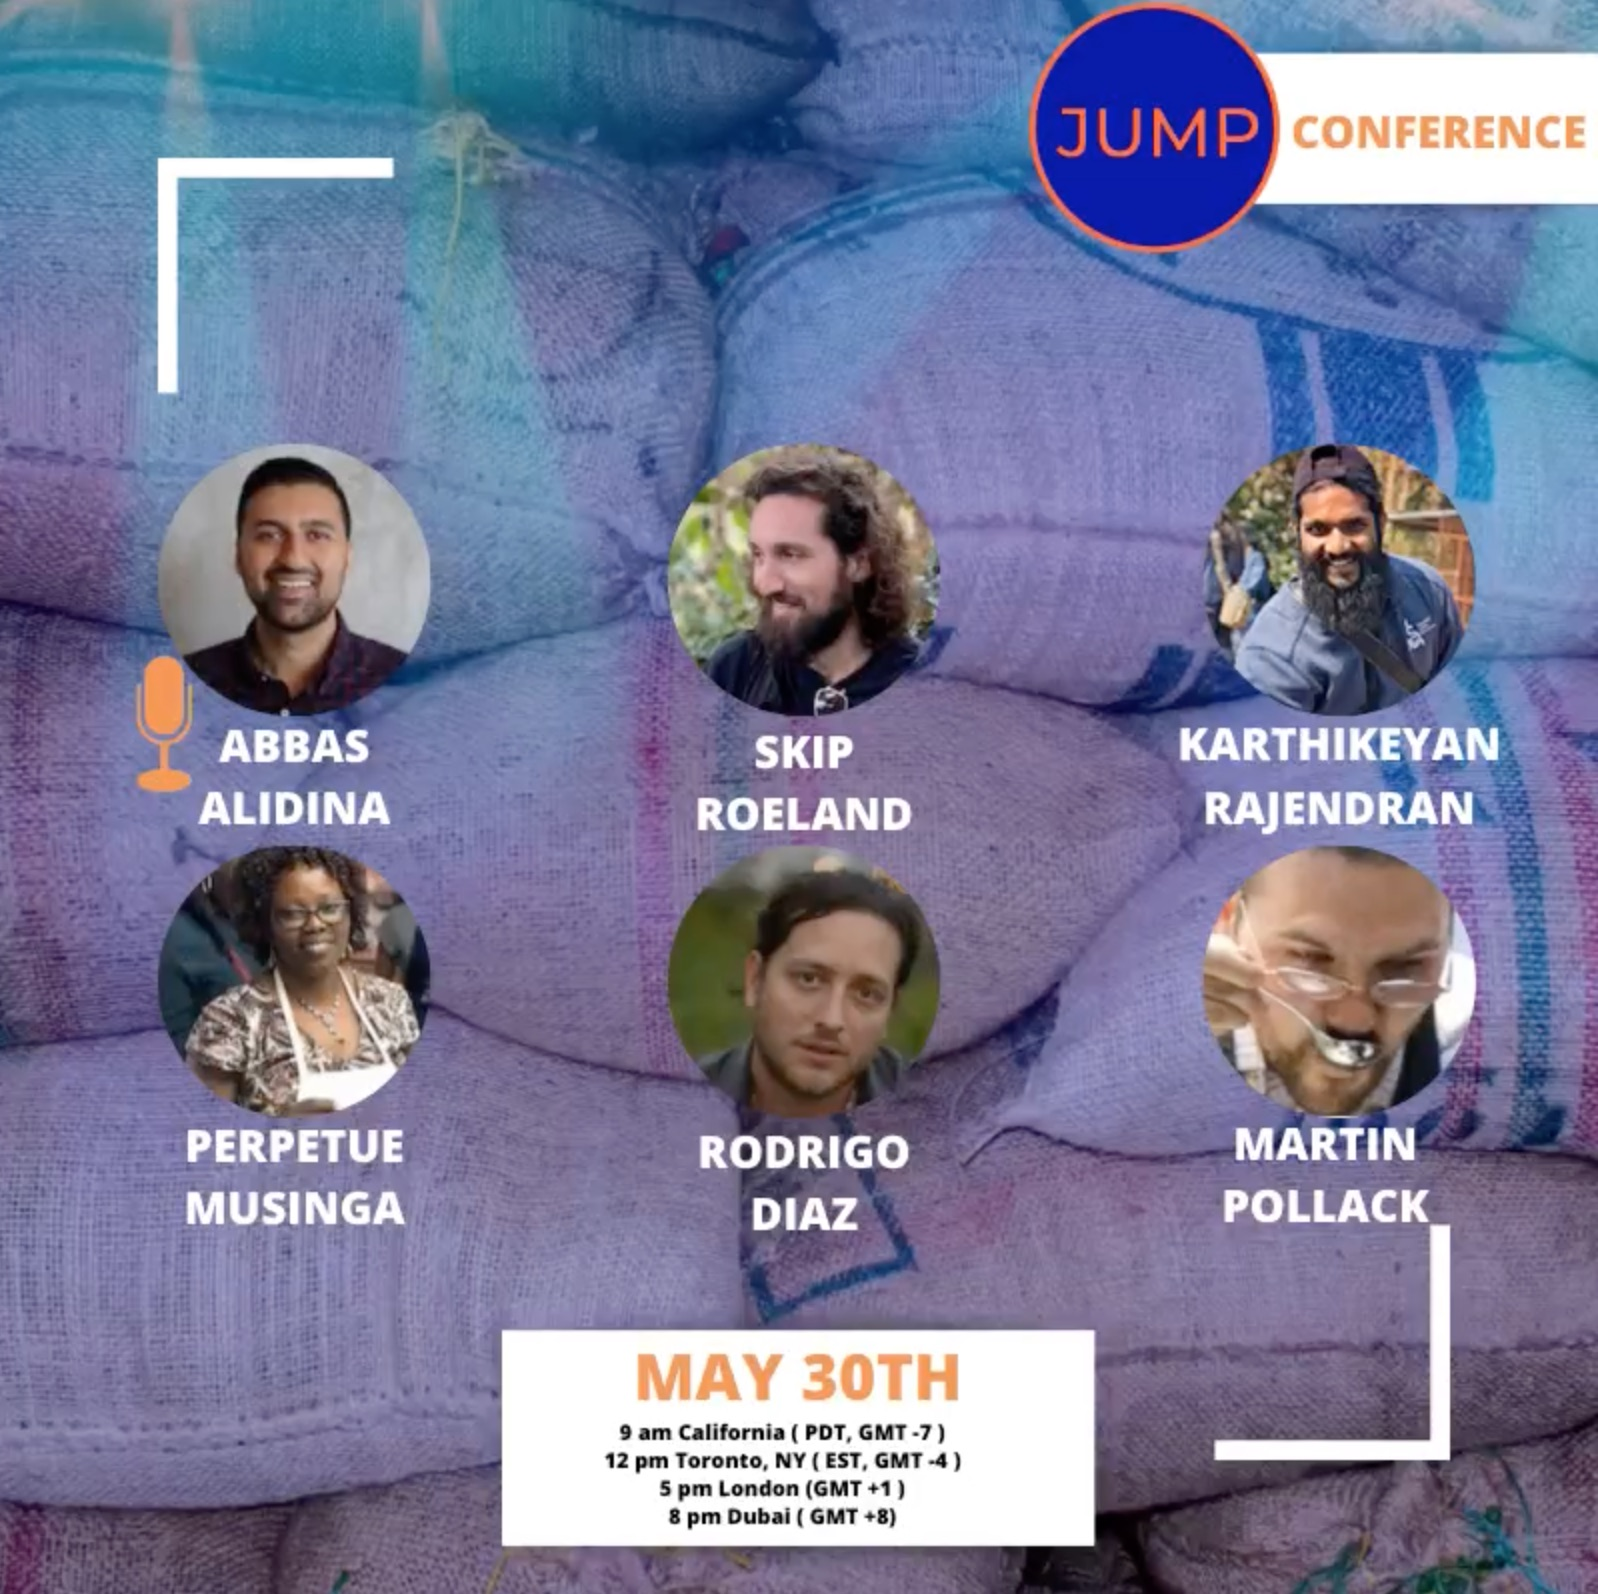 JUMP Conference Speakers B